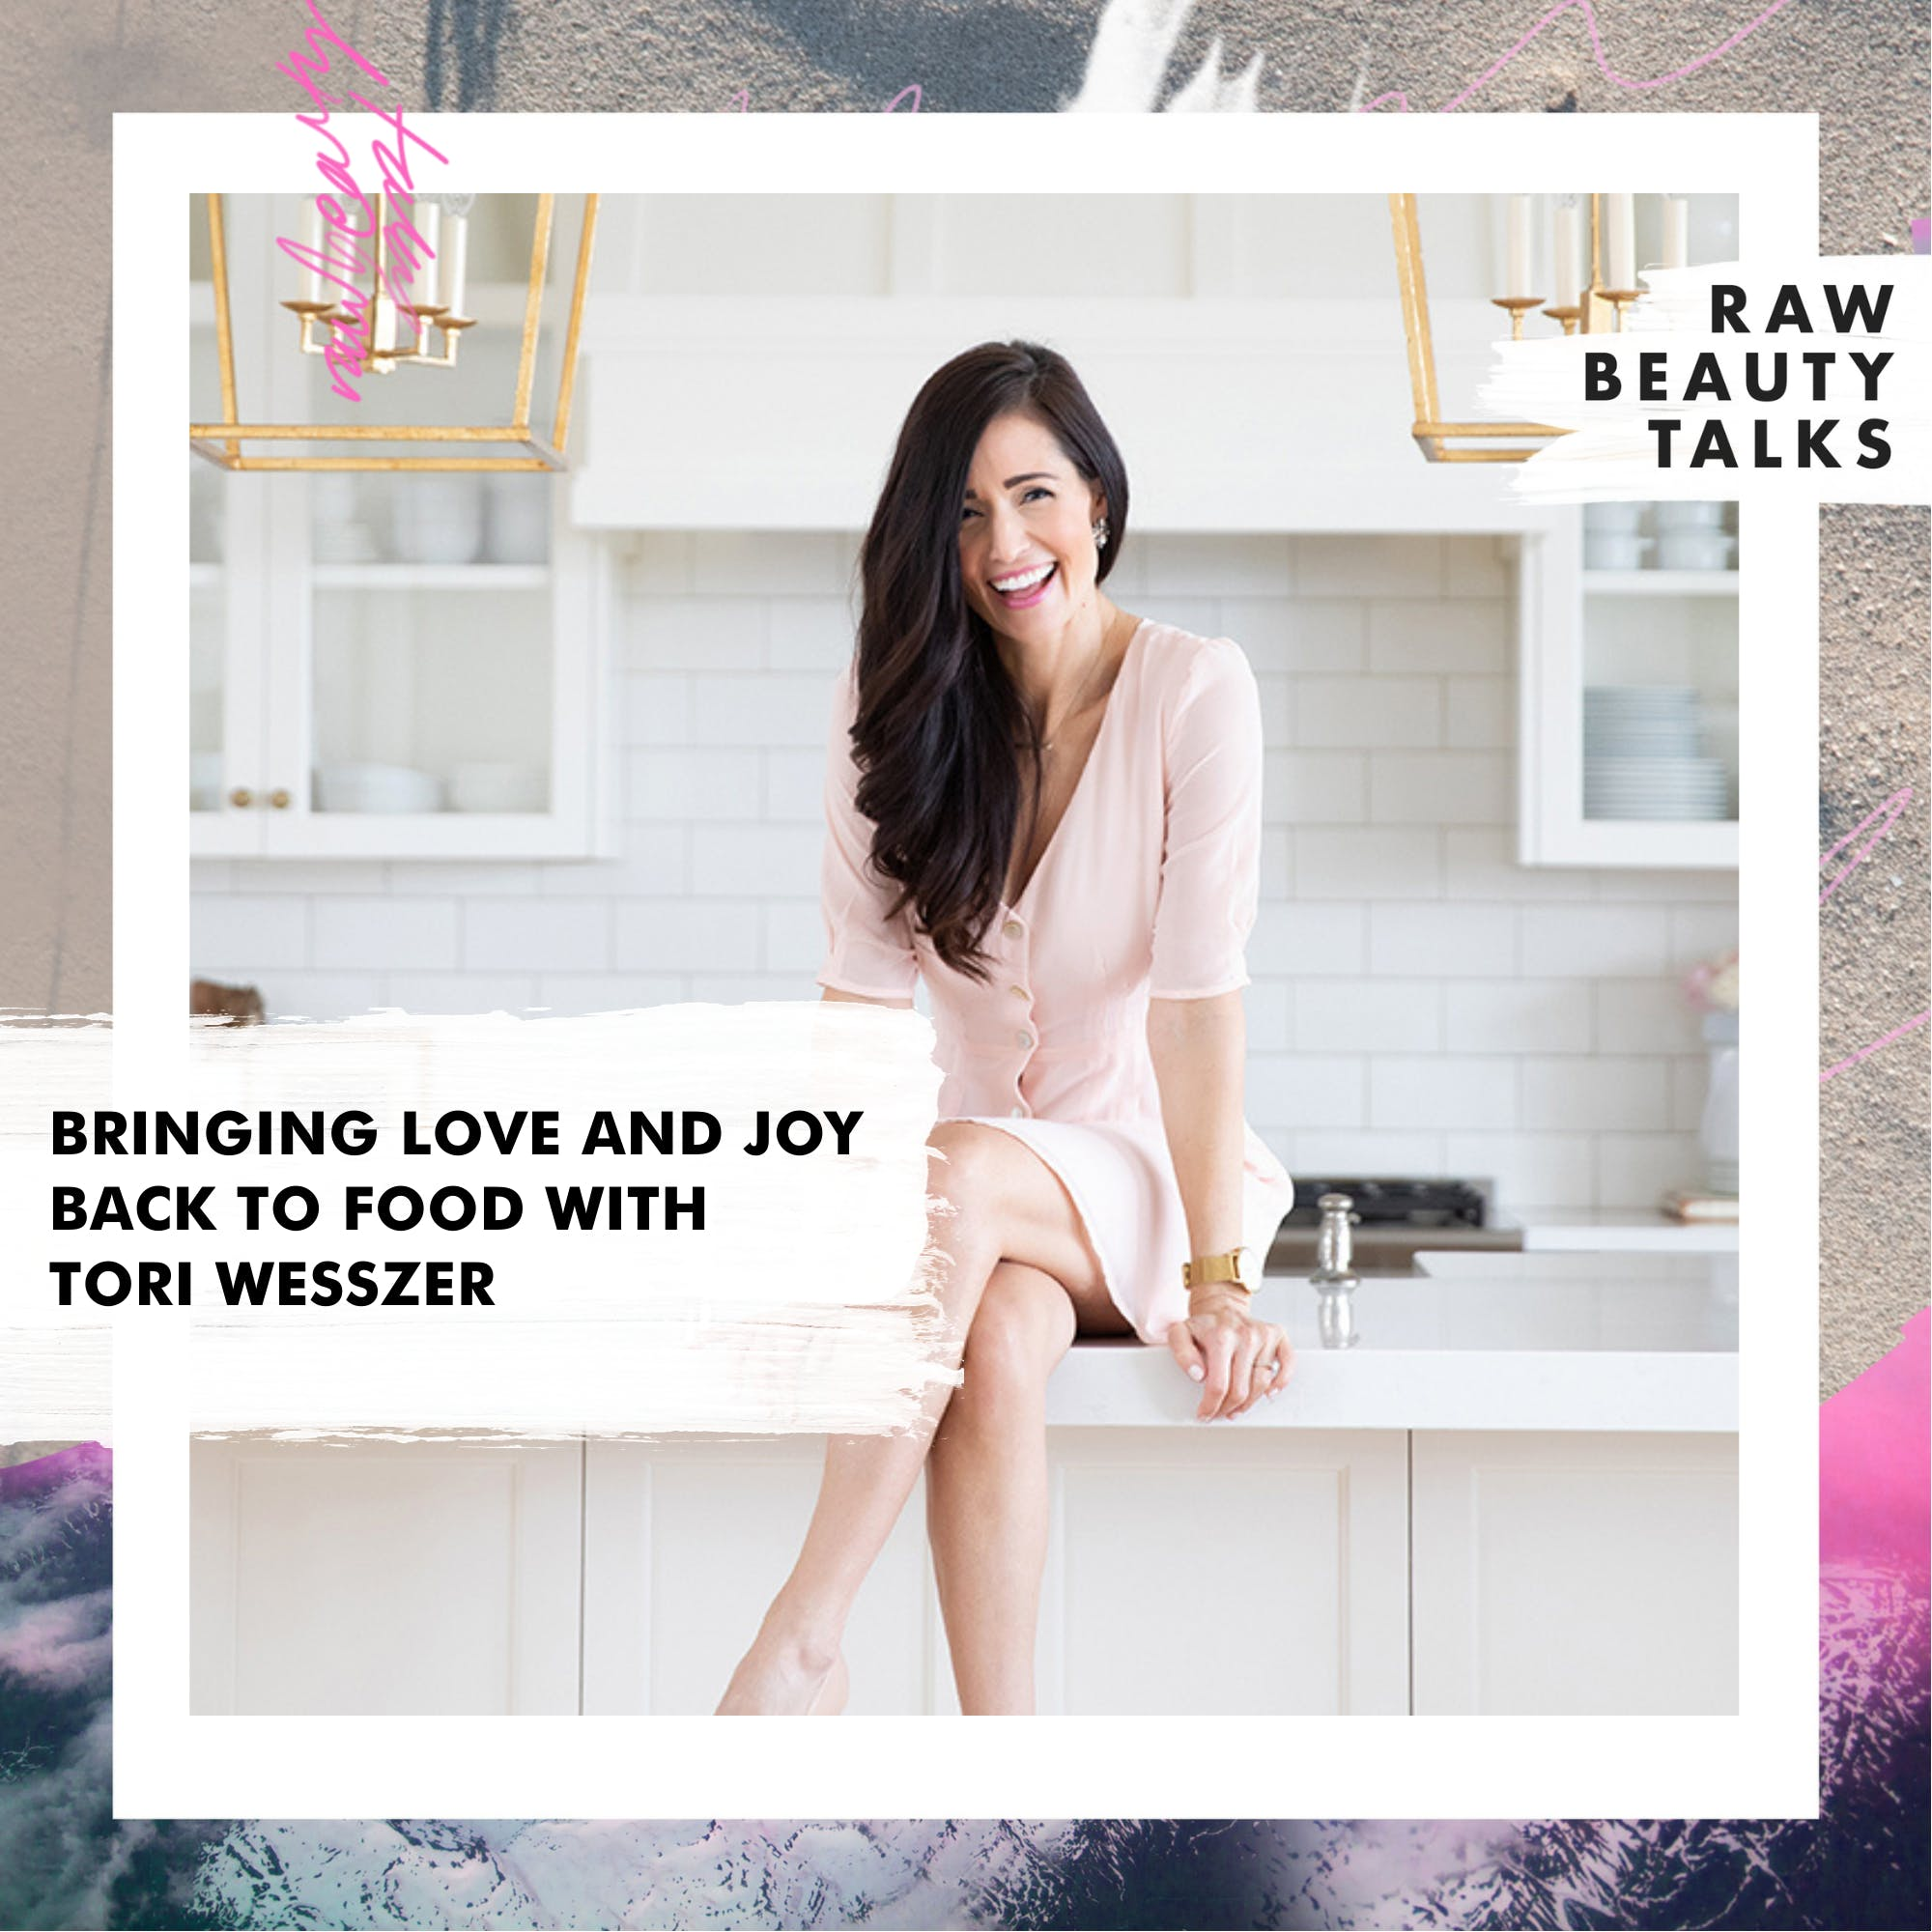 Bringing Love and Joy Back to Food with Tori Wesszer